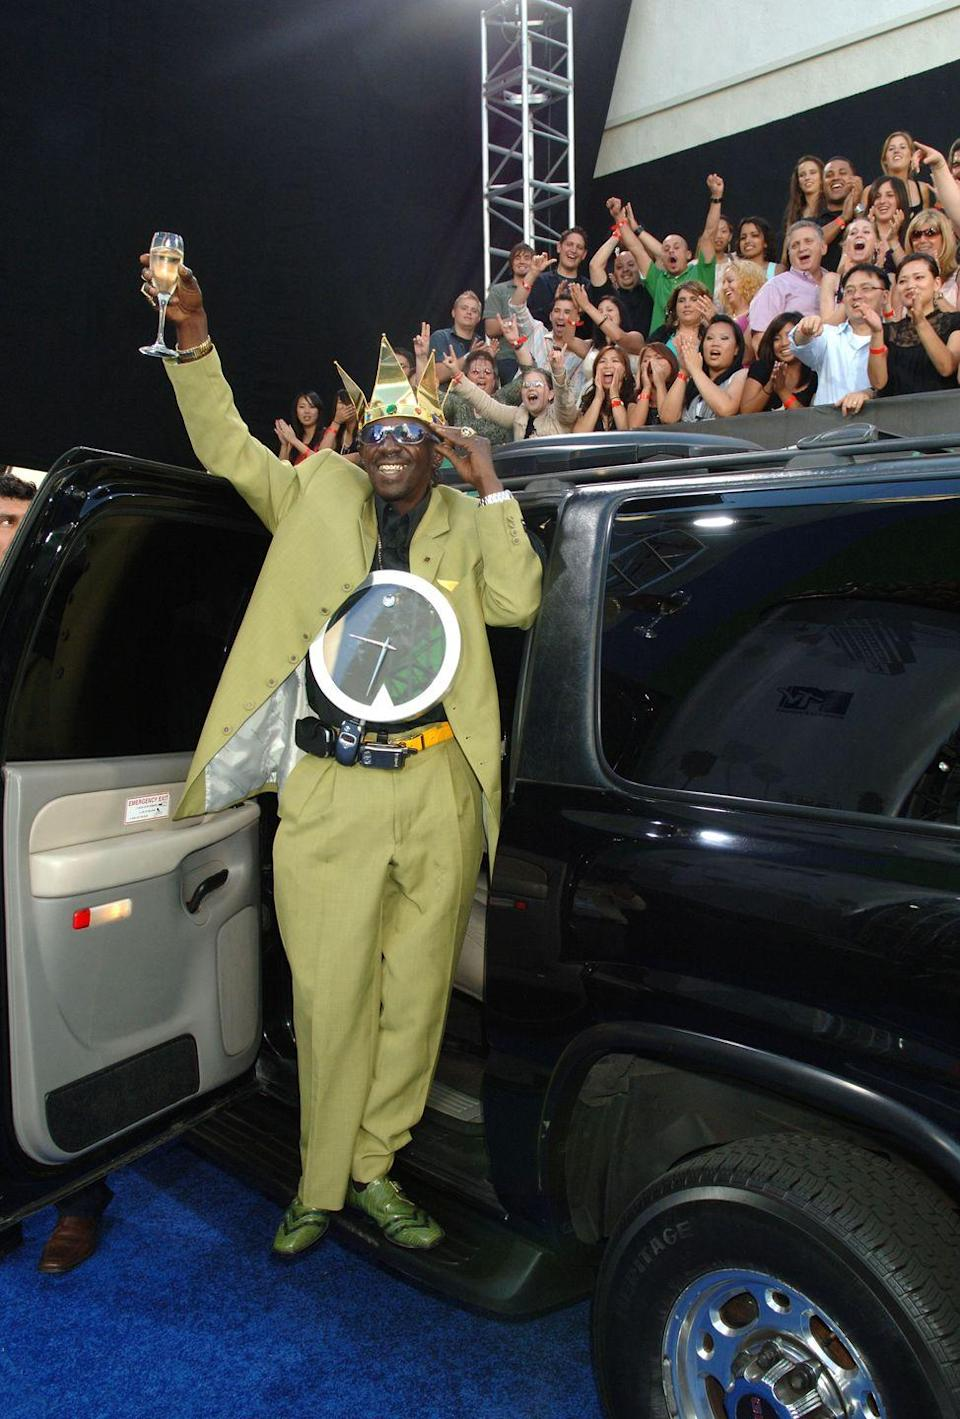 <p>Rapper turned reality star Flavor Flav, who made an attempt at finding love over the course of three seasons on VH1's <em>Flavor of Love</em> (2006-2008), arrives at the 2006 MTV Movies awards ready to party.</p>